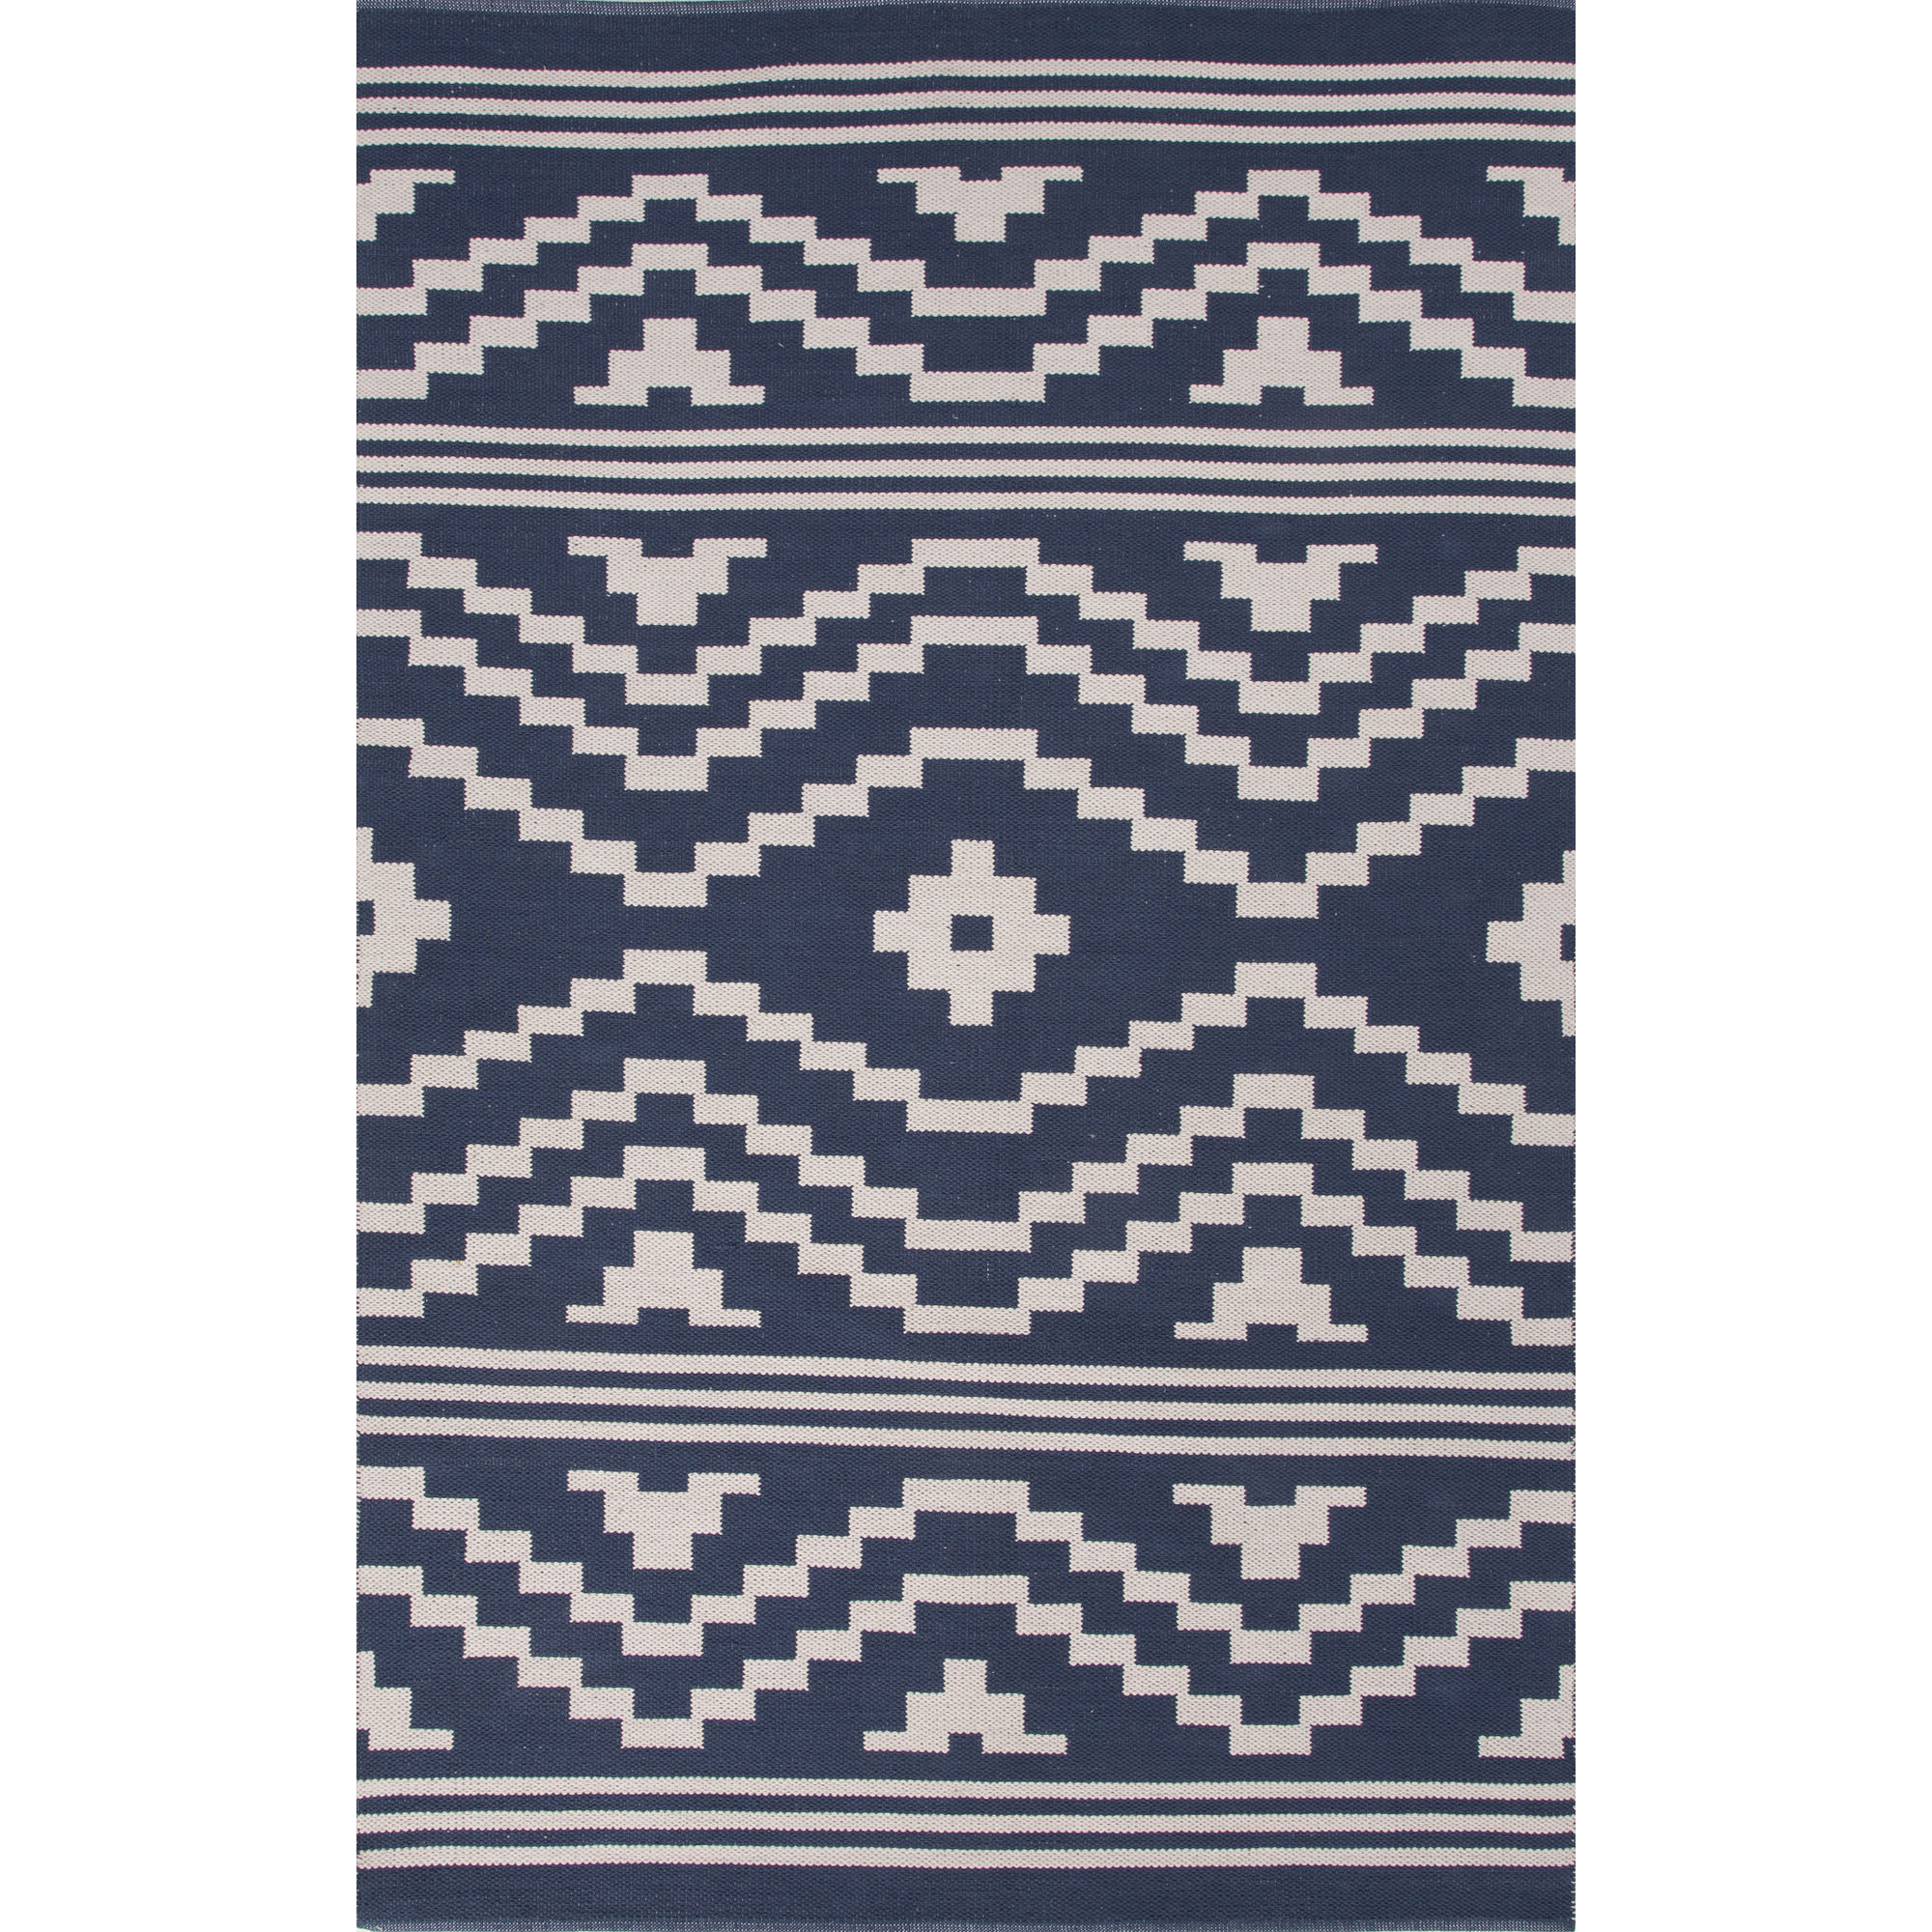 JAIPUR Rugs Traditions Modern Cotton Flat Weave 2 x 3 Rug - Item Number: RUG122224